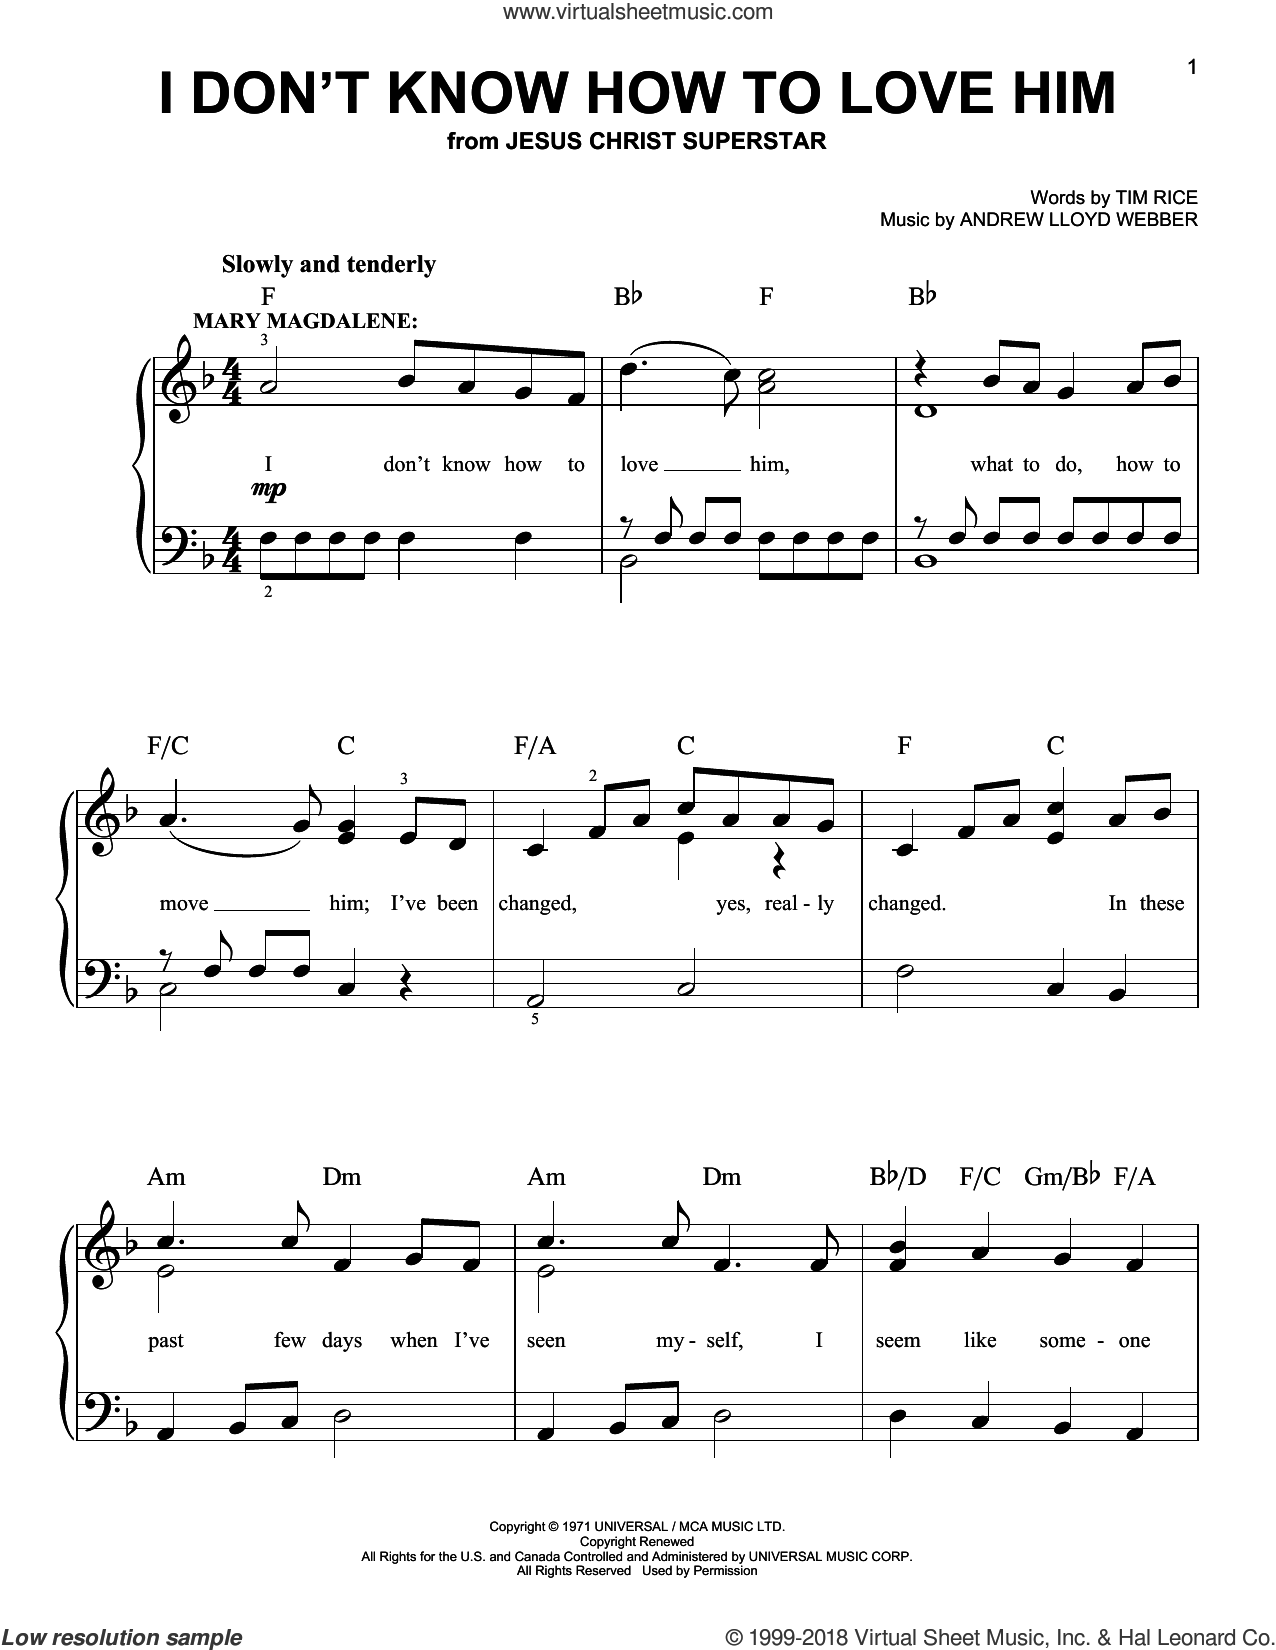 I Don't Know How To Love Him sheet music for piano solo (chords) by Tim Rice